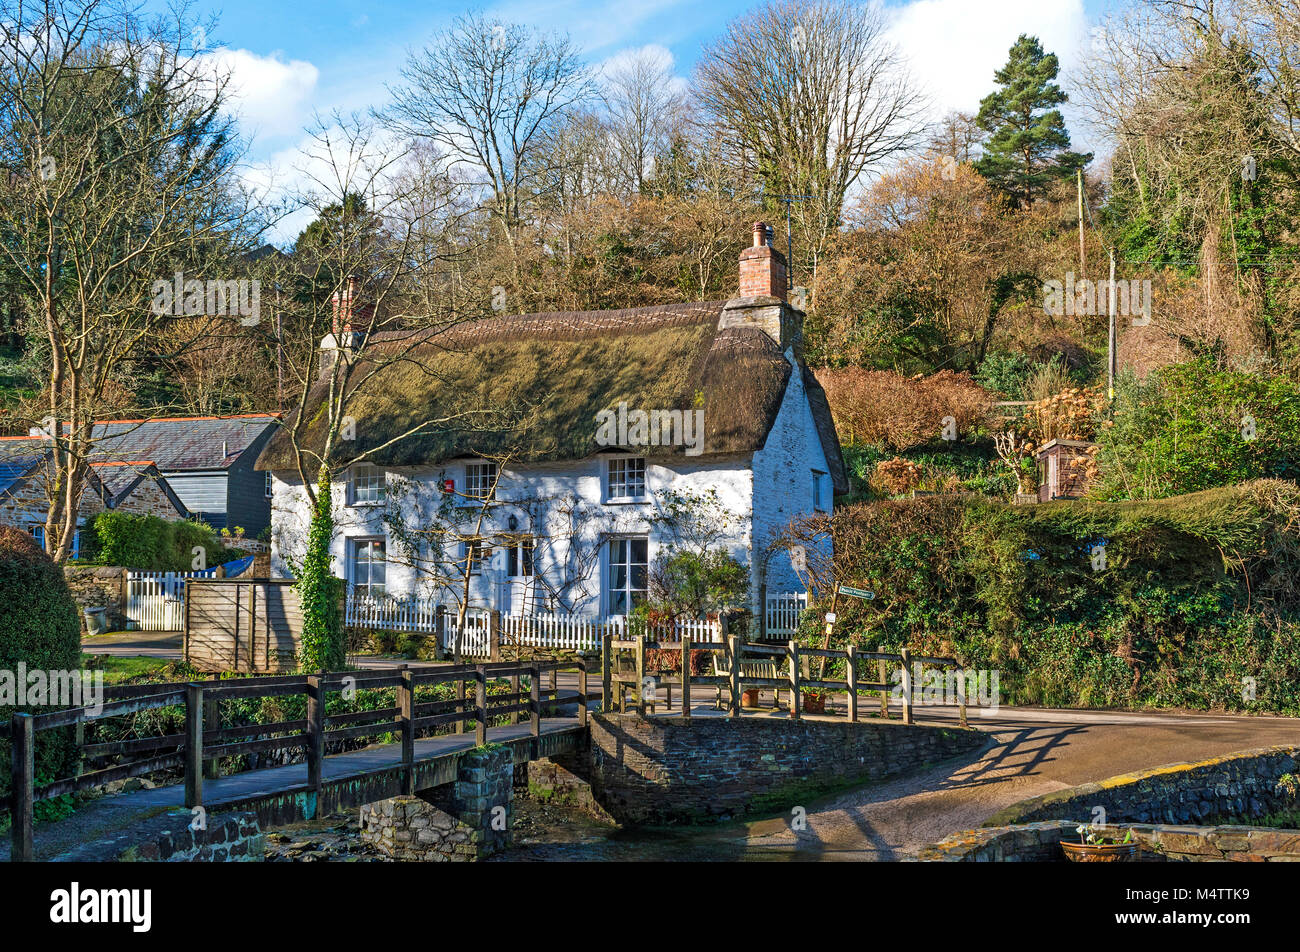 thatched holiday cottage in helford village, cornwall, england, britain, uk. - Stock Image